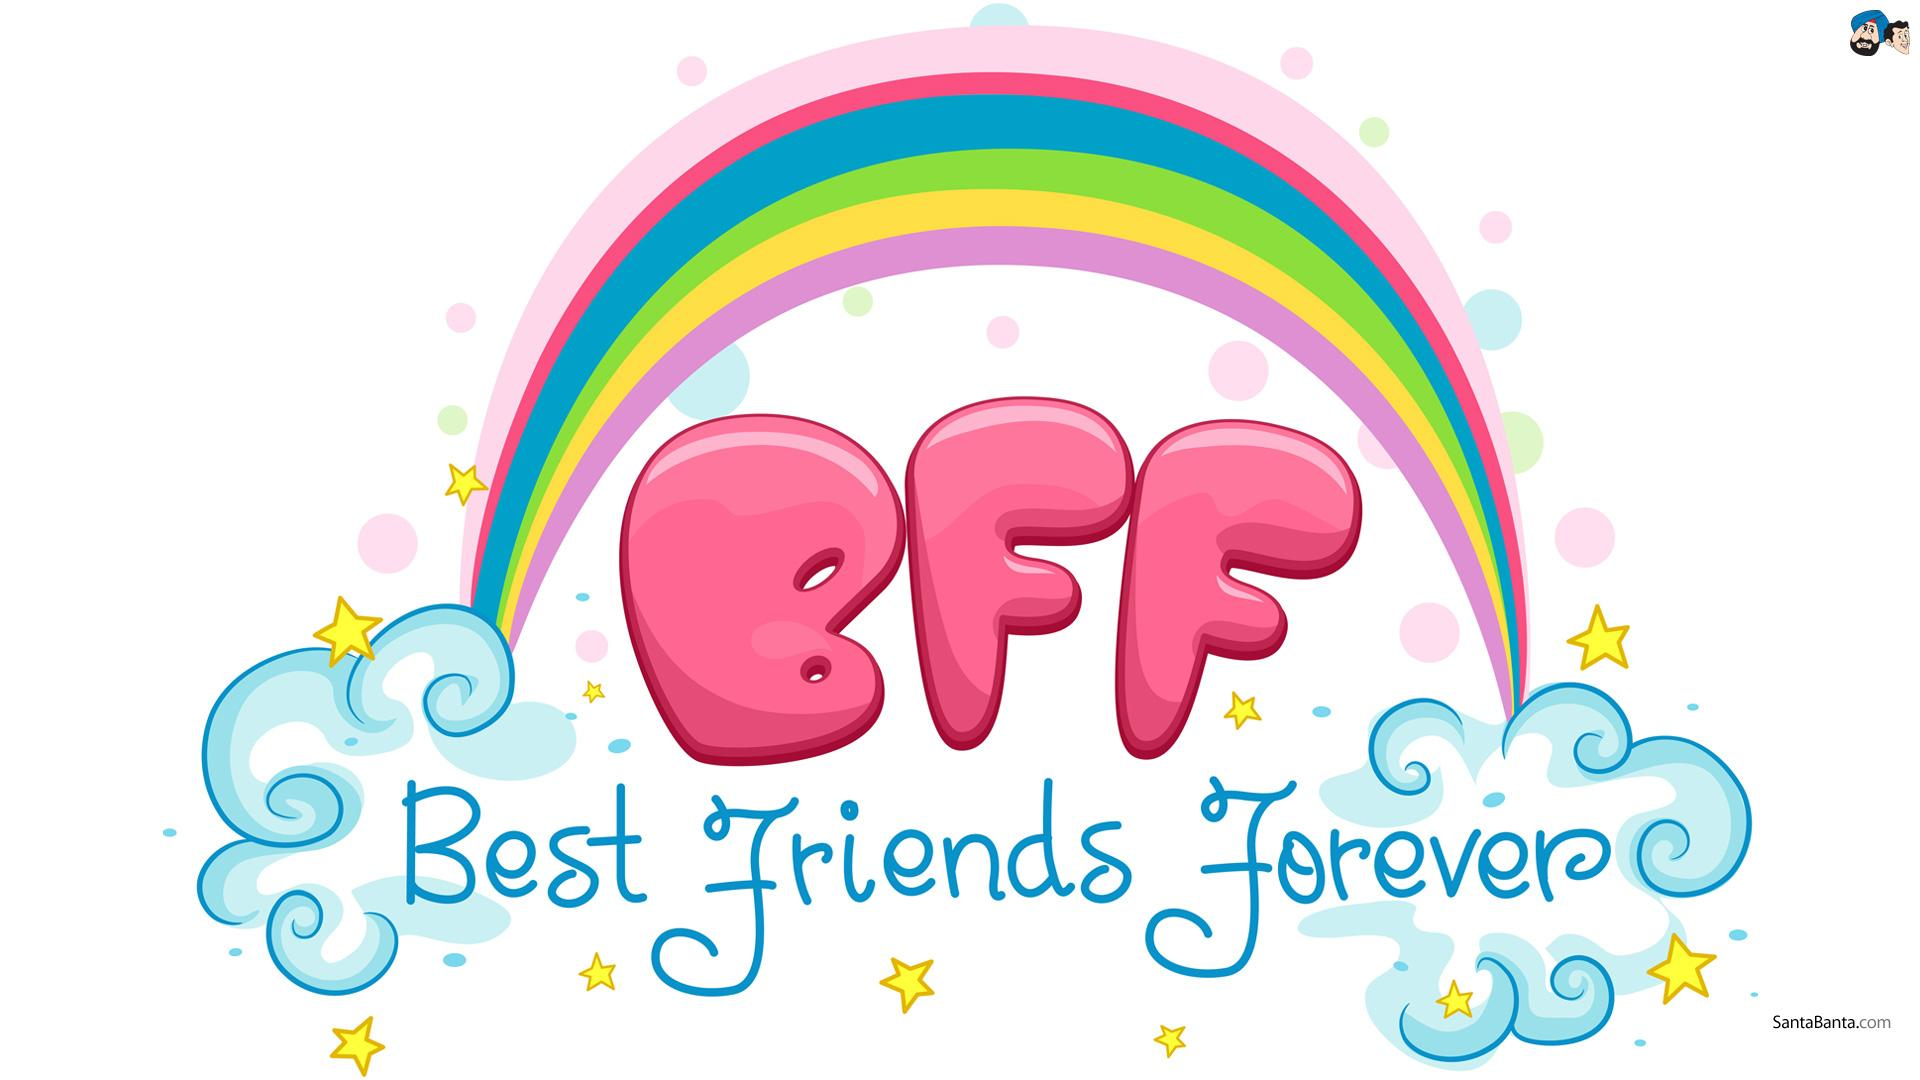 hd best friend forever | clipart panda - free clipart images